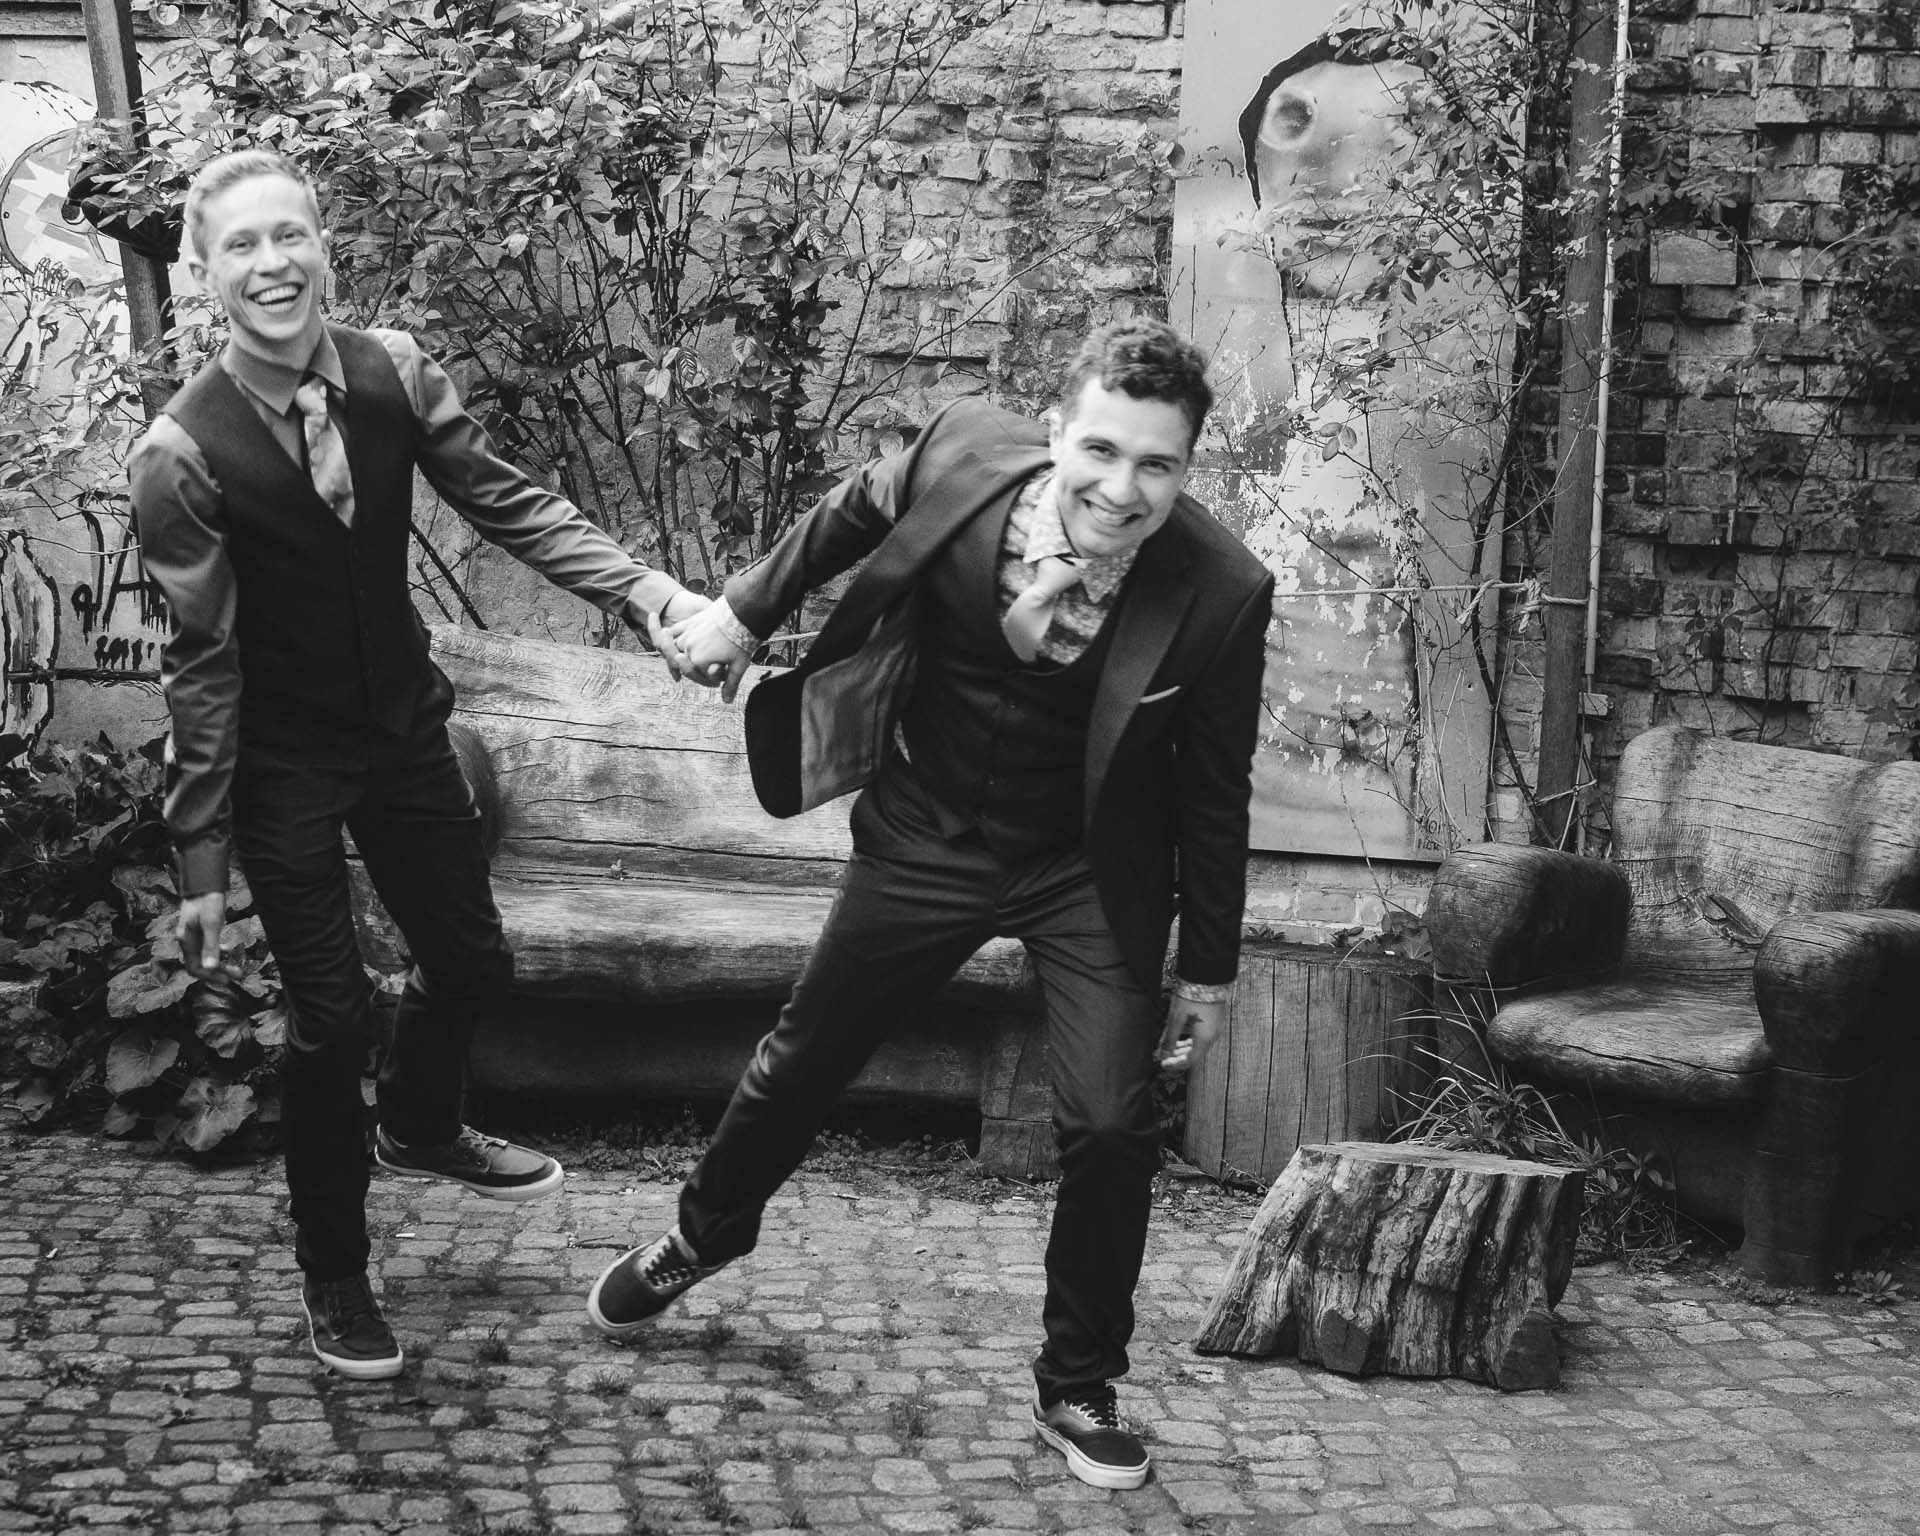 Groom & Groom jumping. Black and white image of gay couple smiling and laughing. Reviews wedding photographer Ireland. Wedding in Berlin, courtyard and graffiti background.